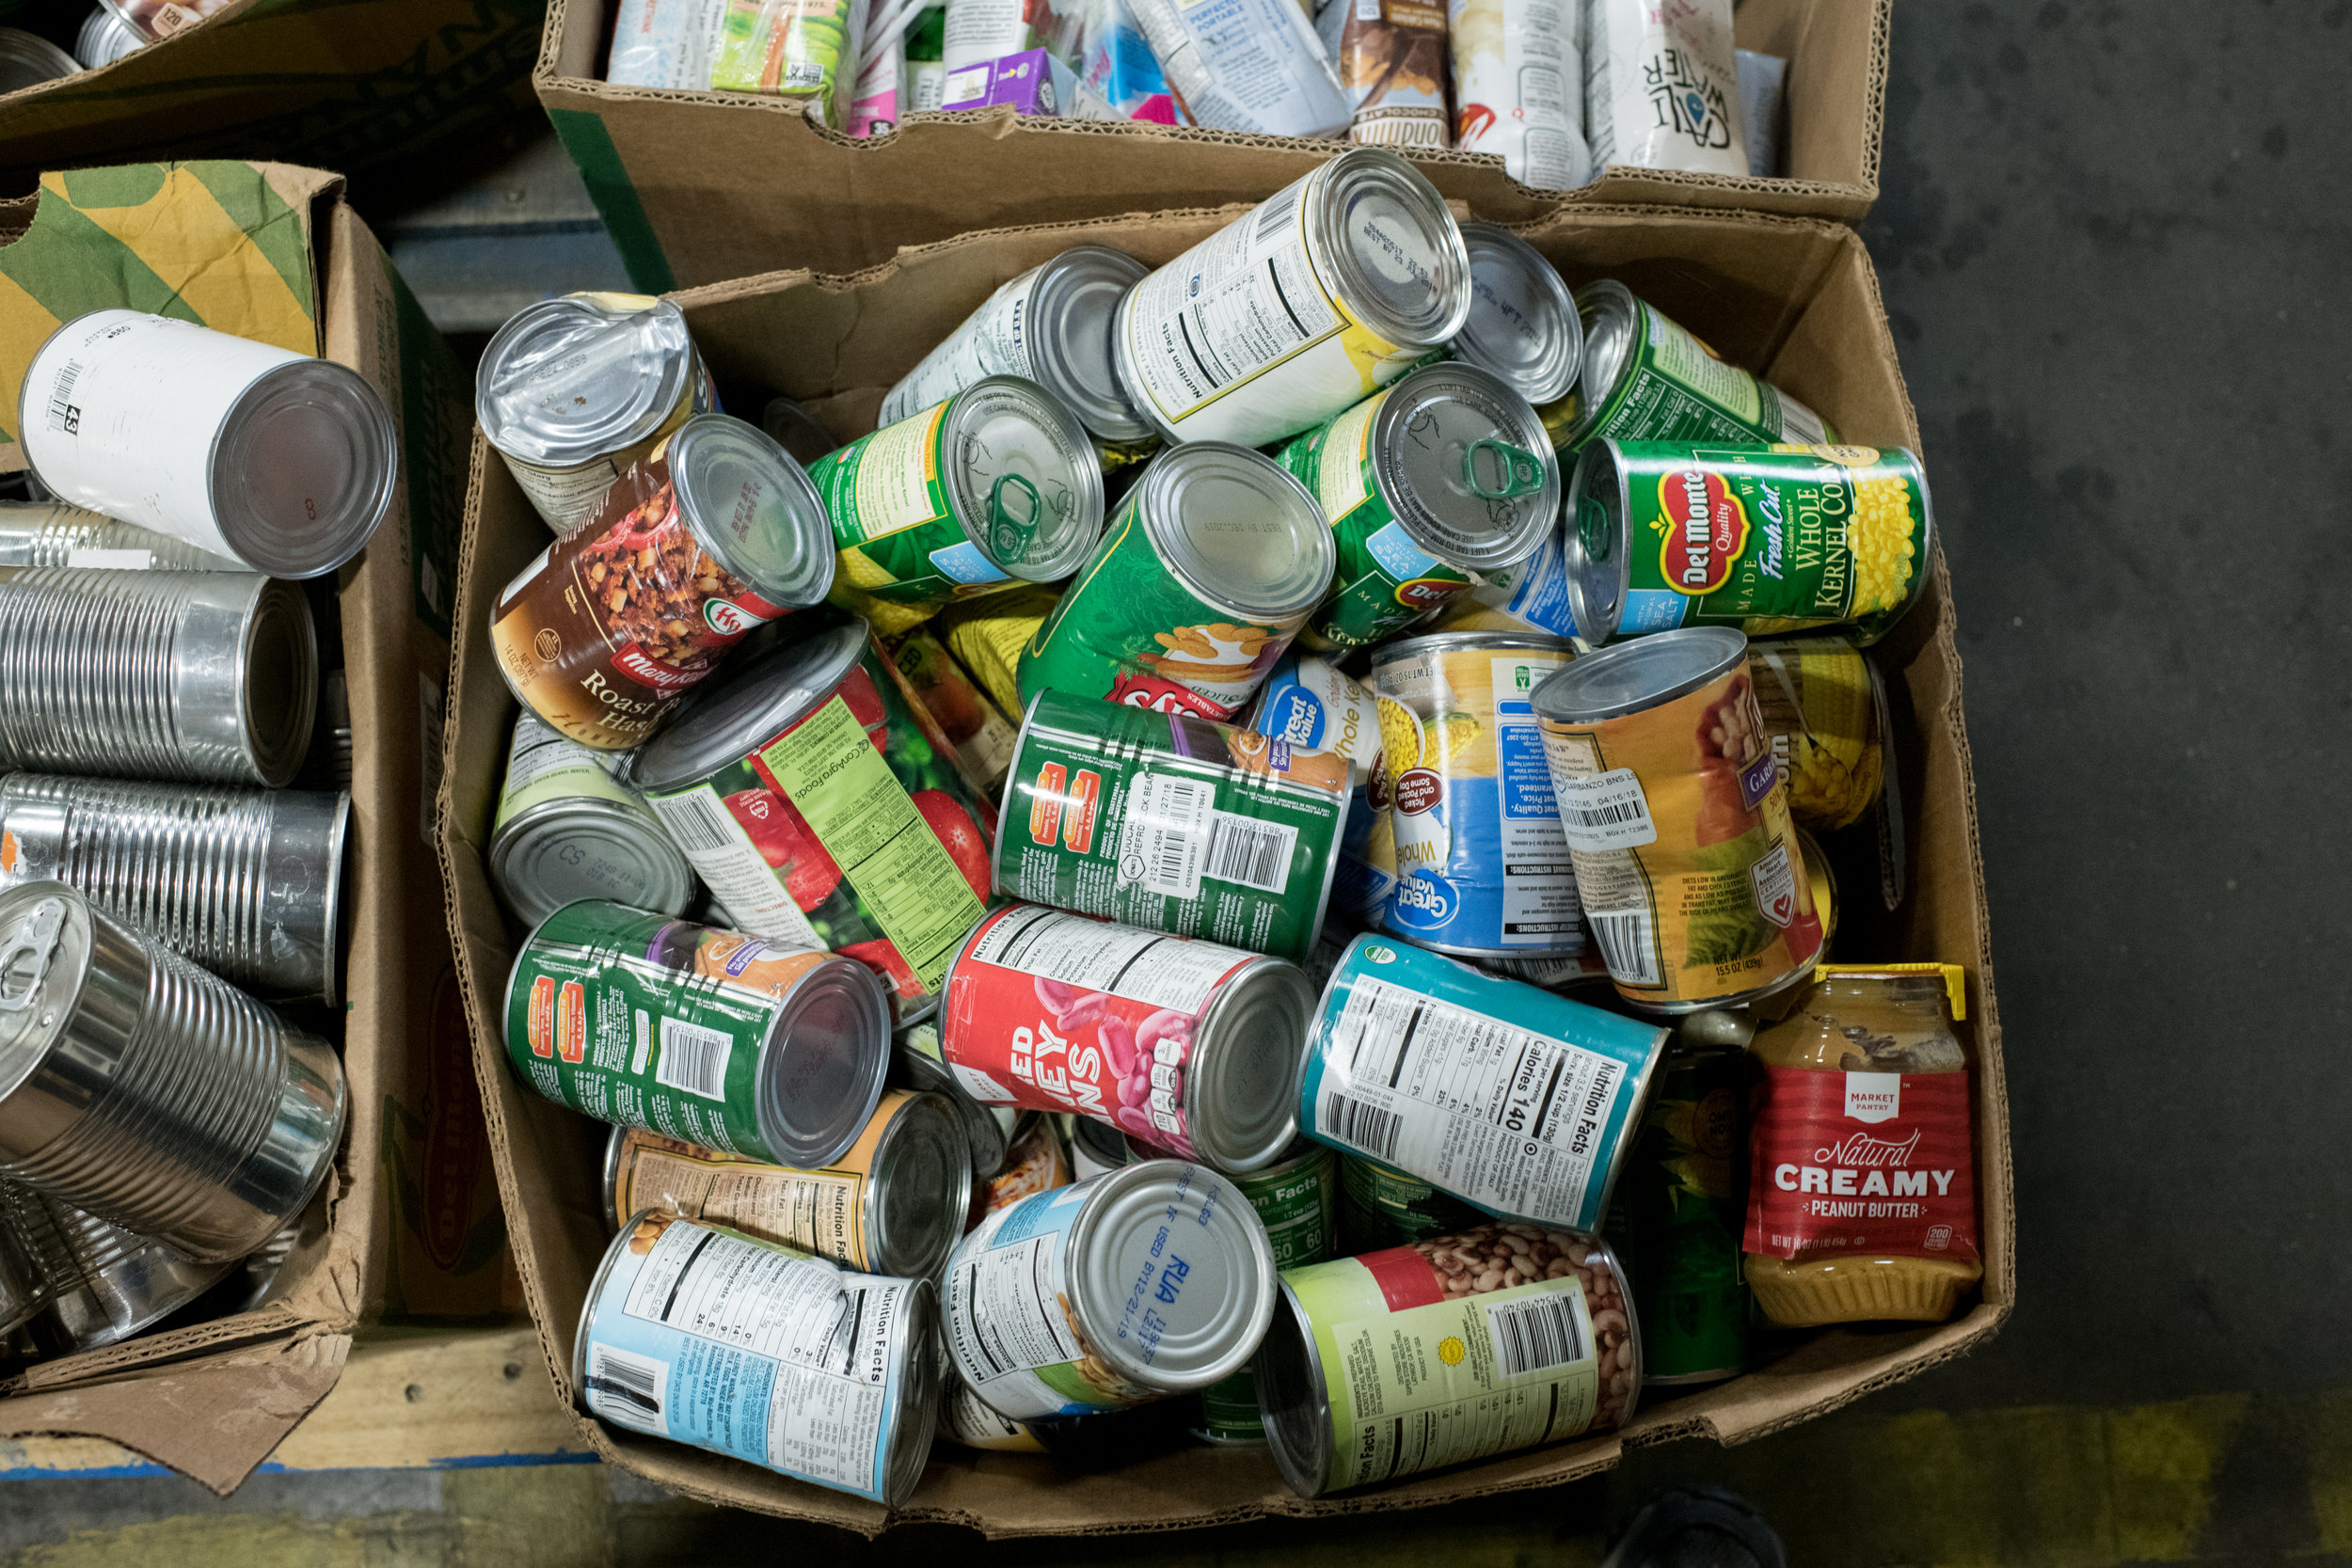 Most food at the food bank are non-perishables, high in sodium and preservatives. Photo by Lisa Richmond.